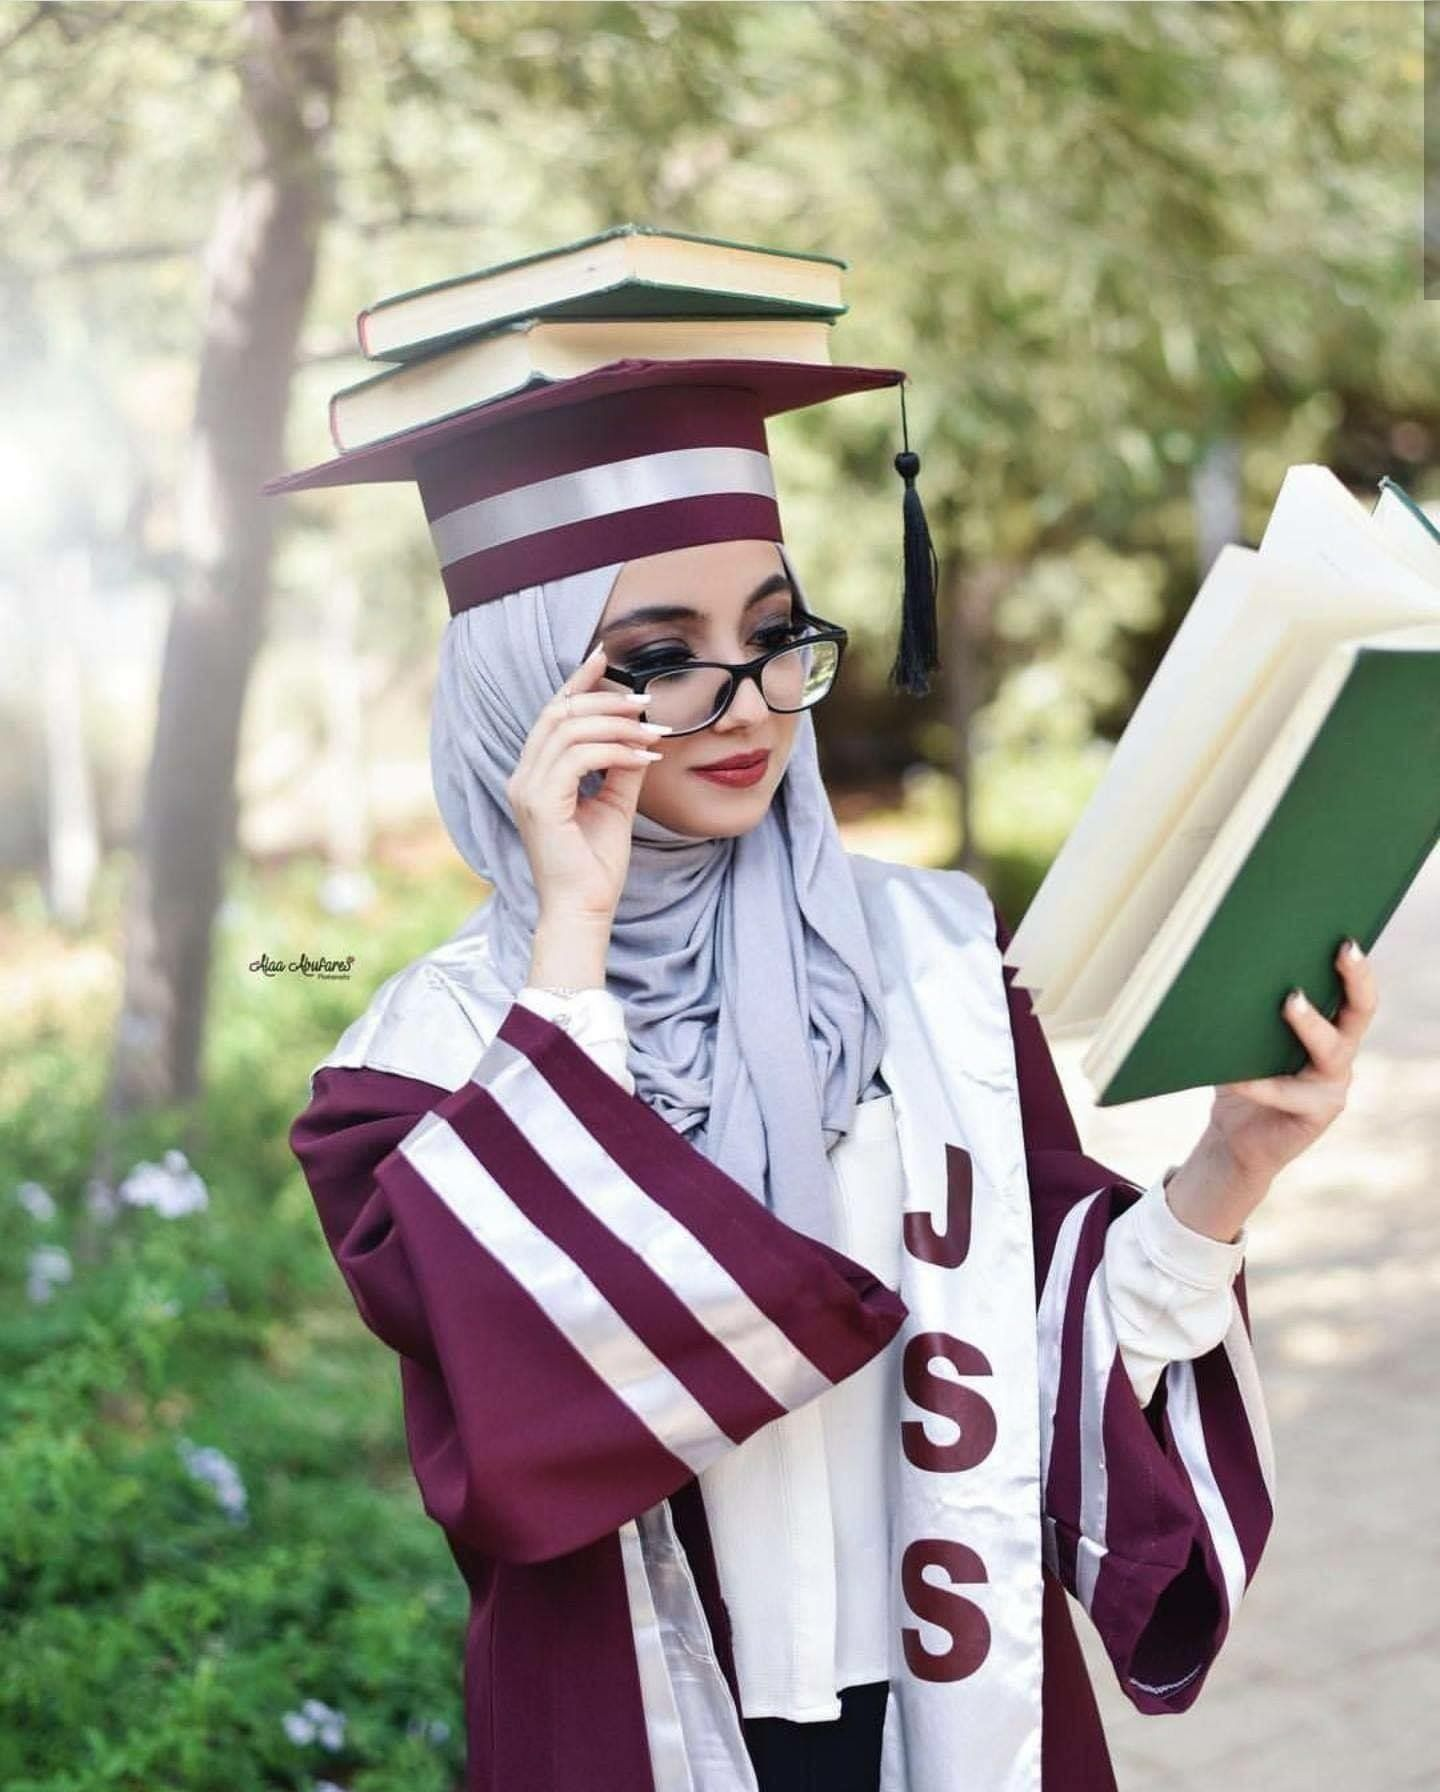 Books On Her Head Photoshoot Poses Graduation Picture Poses Graduation Outfit